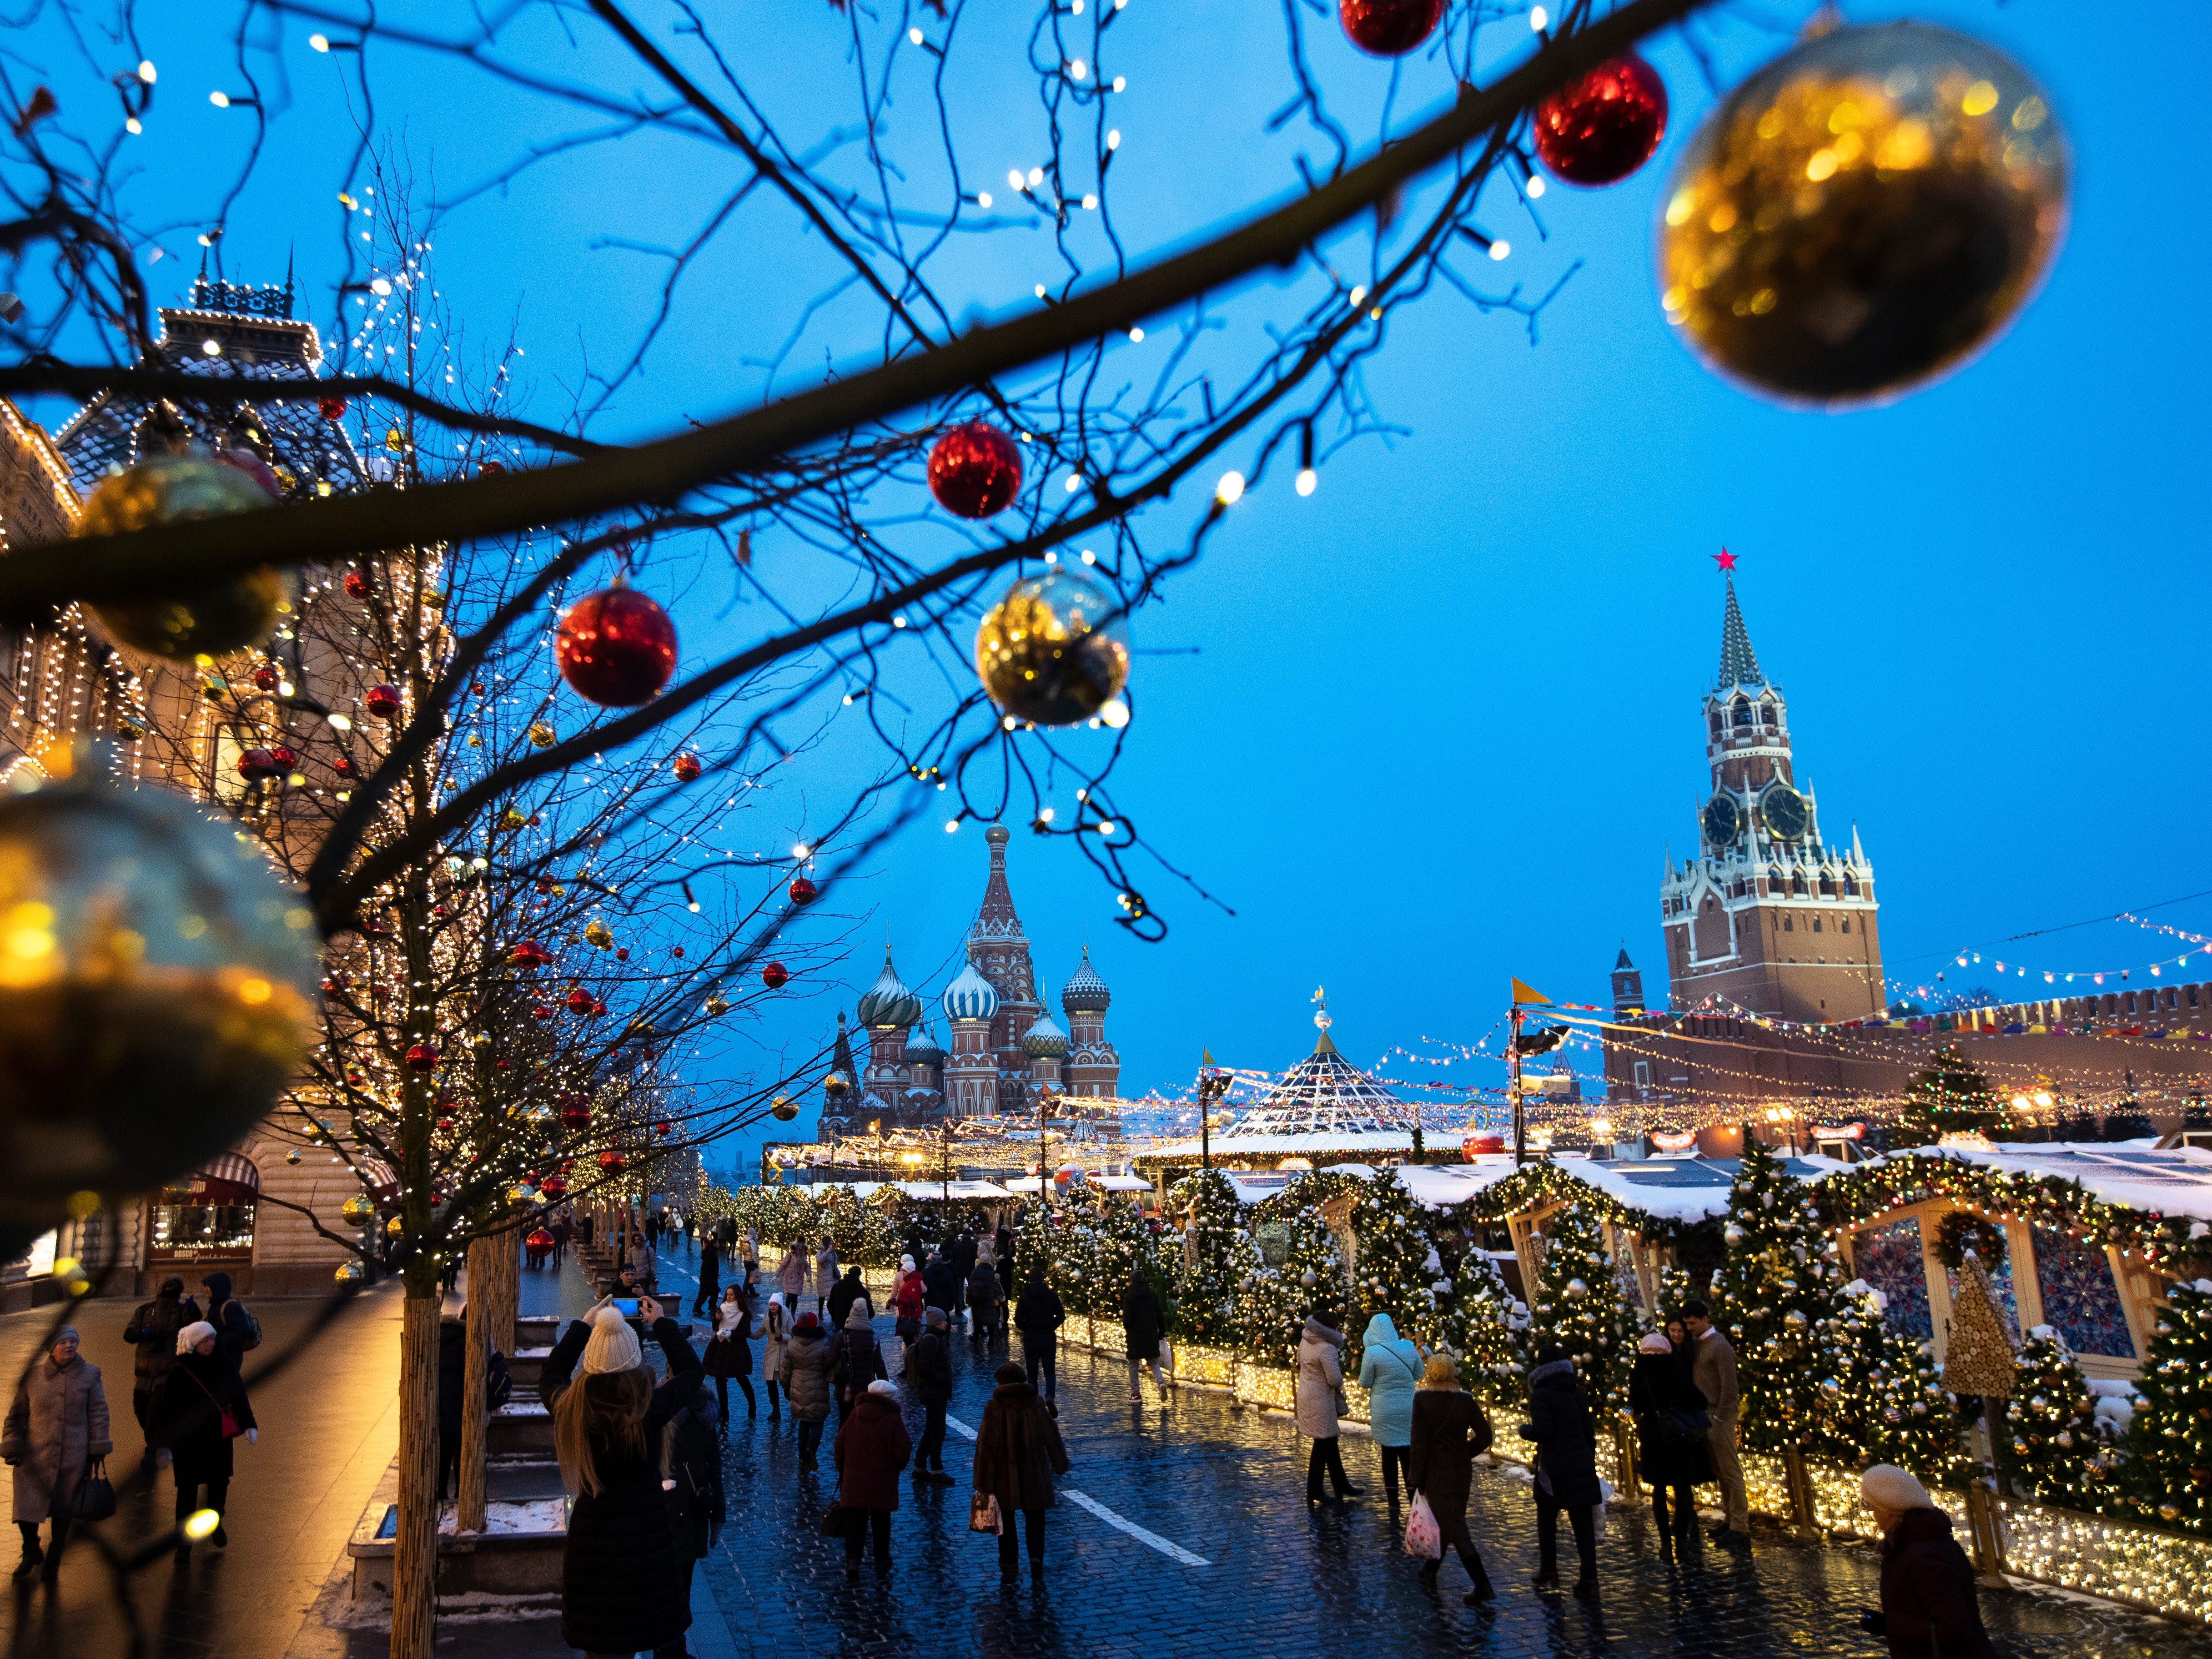 People walk in Red Square decorated for Christmas and New Year celebrations, with the St. Basil's Cathedral, center, and the Kremlin's Spasskaya Tower, right, in the background, in Moscow, Russia, Friday, Dec. 21, 2018.